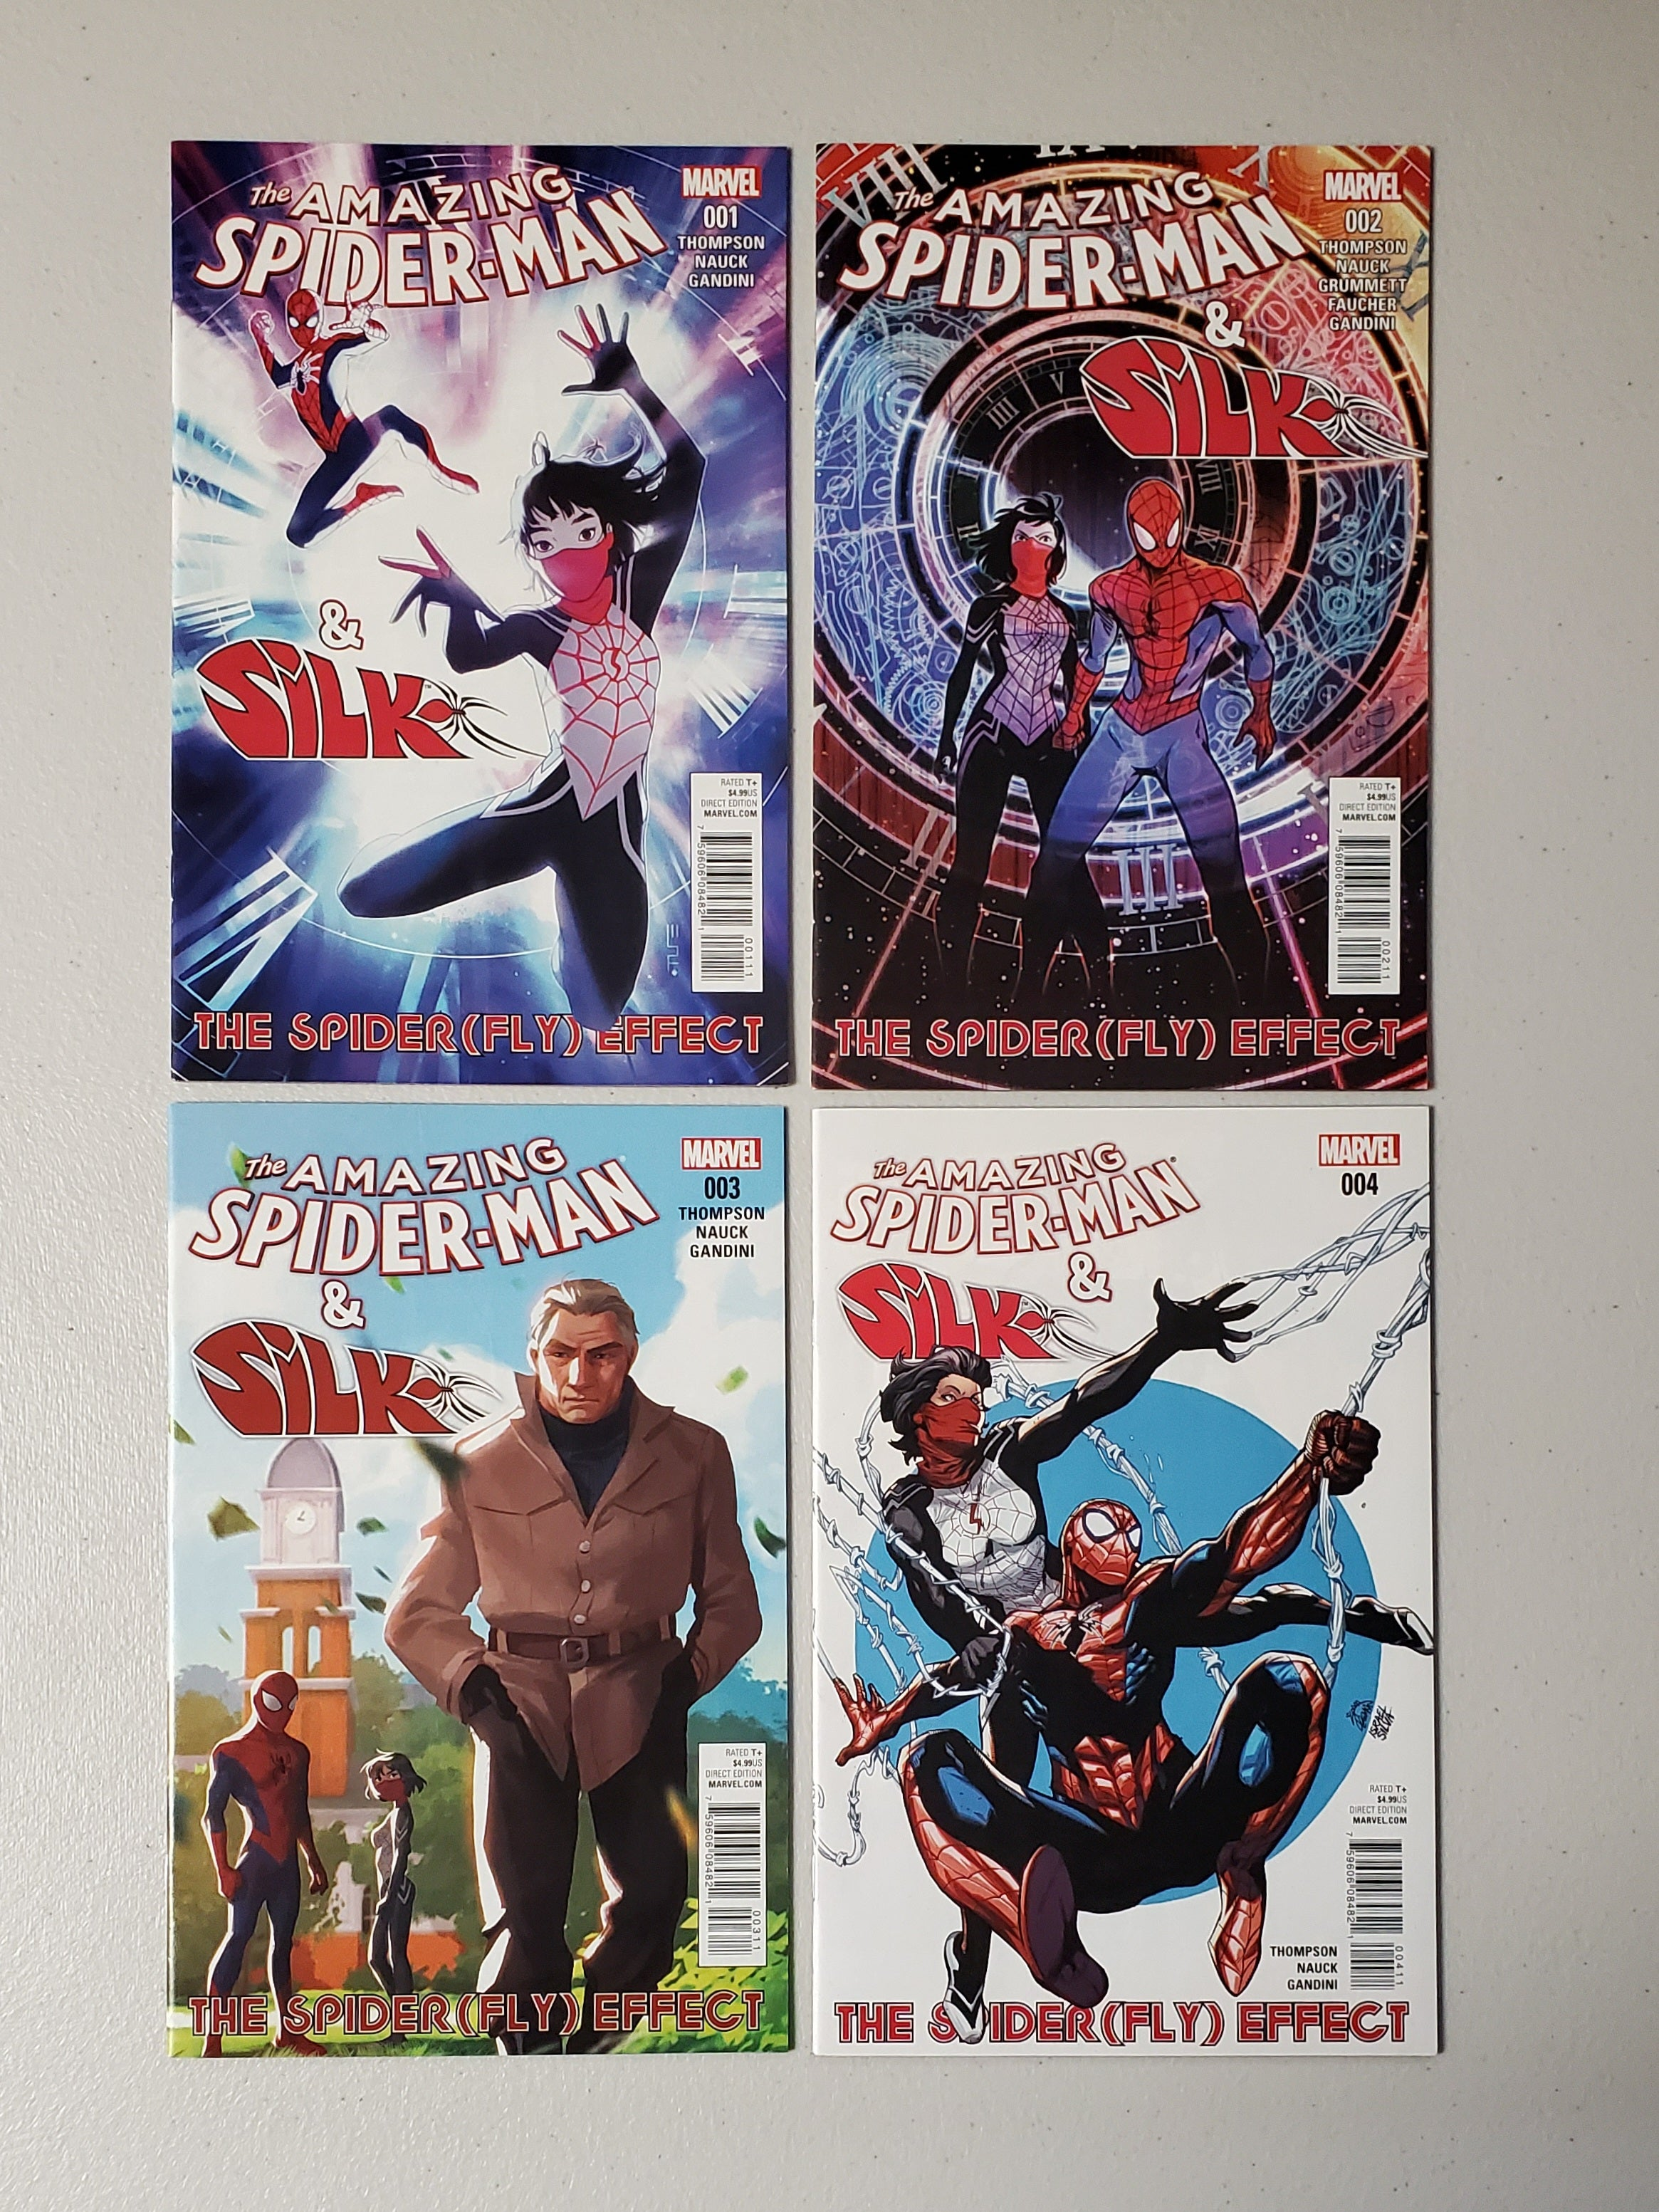 AMAZING SPIDER-MAN & SILK SPIDER (FLY) EFFECT #1-#4 COMPLETE SET